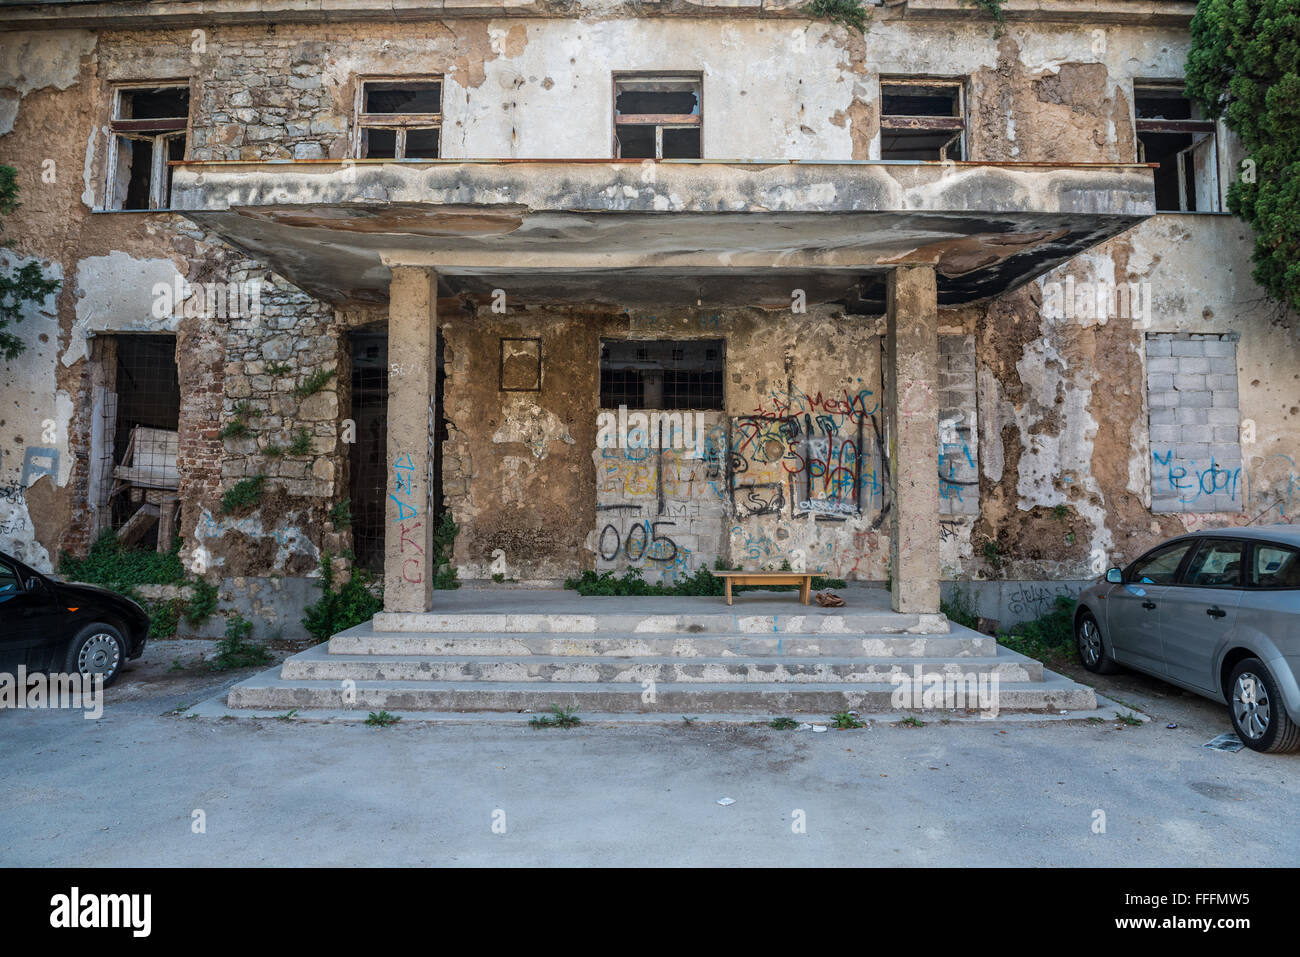 Abandoned building in Mostar city, Bosnia and Herzegovina - Stock Image